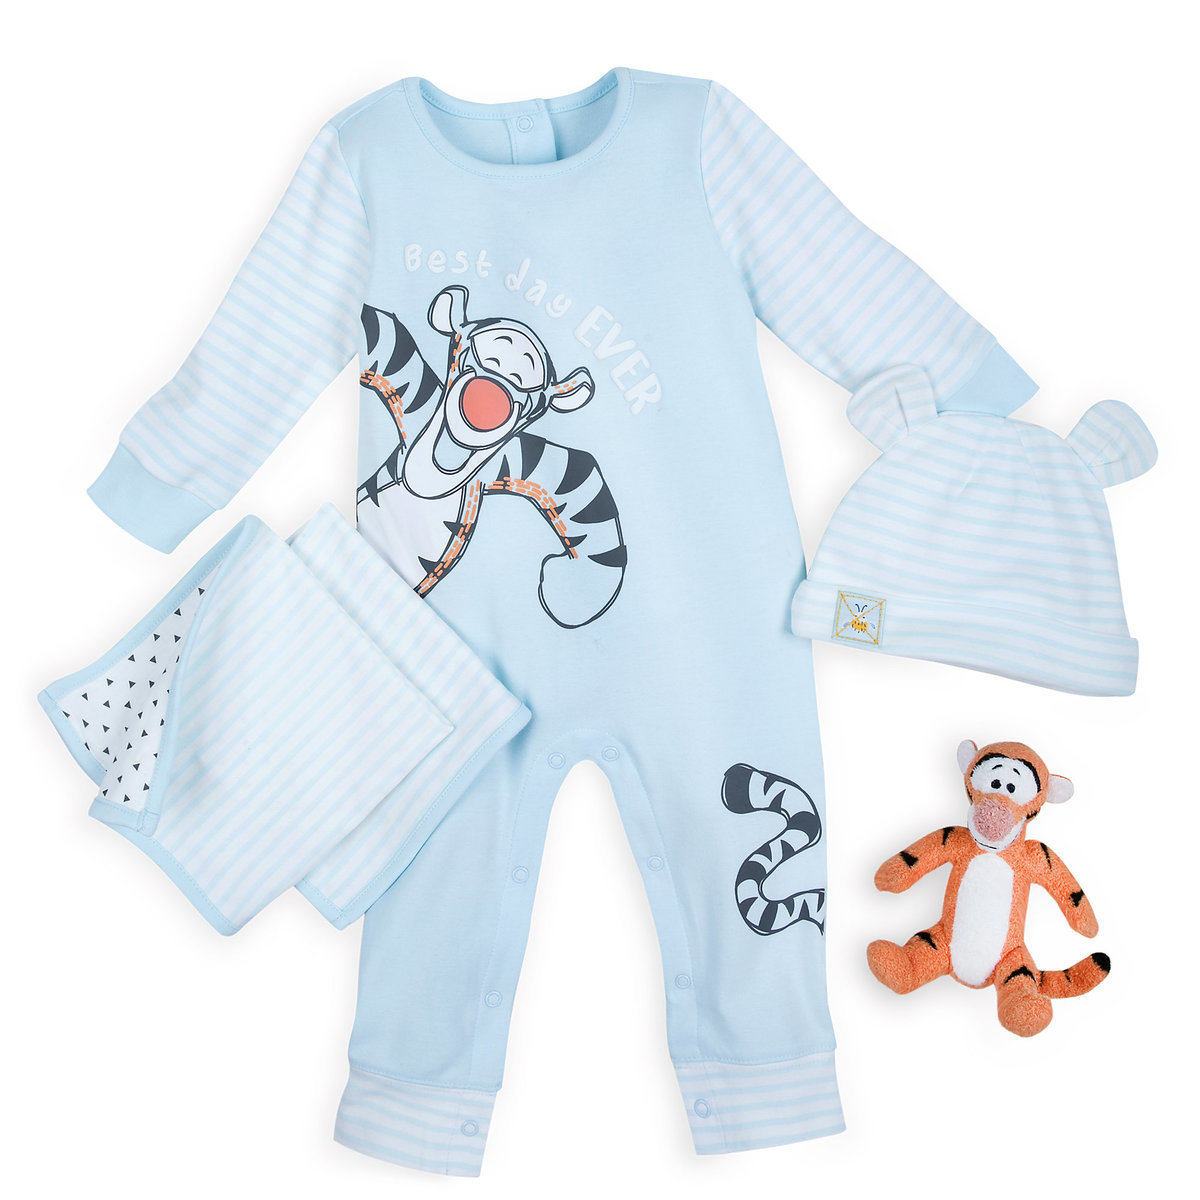 ca4bfcd6088c7 Product Image of Tigger Gift Set for Baby - Blue # 1